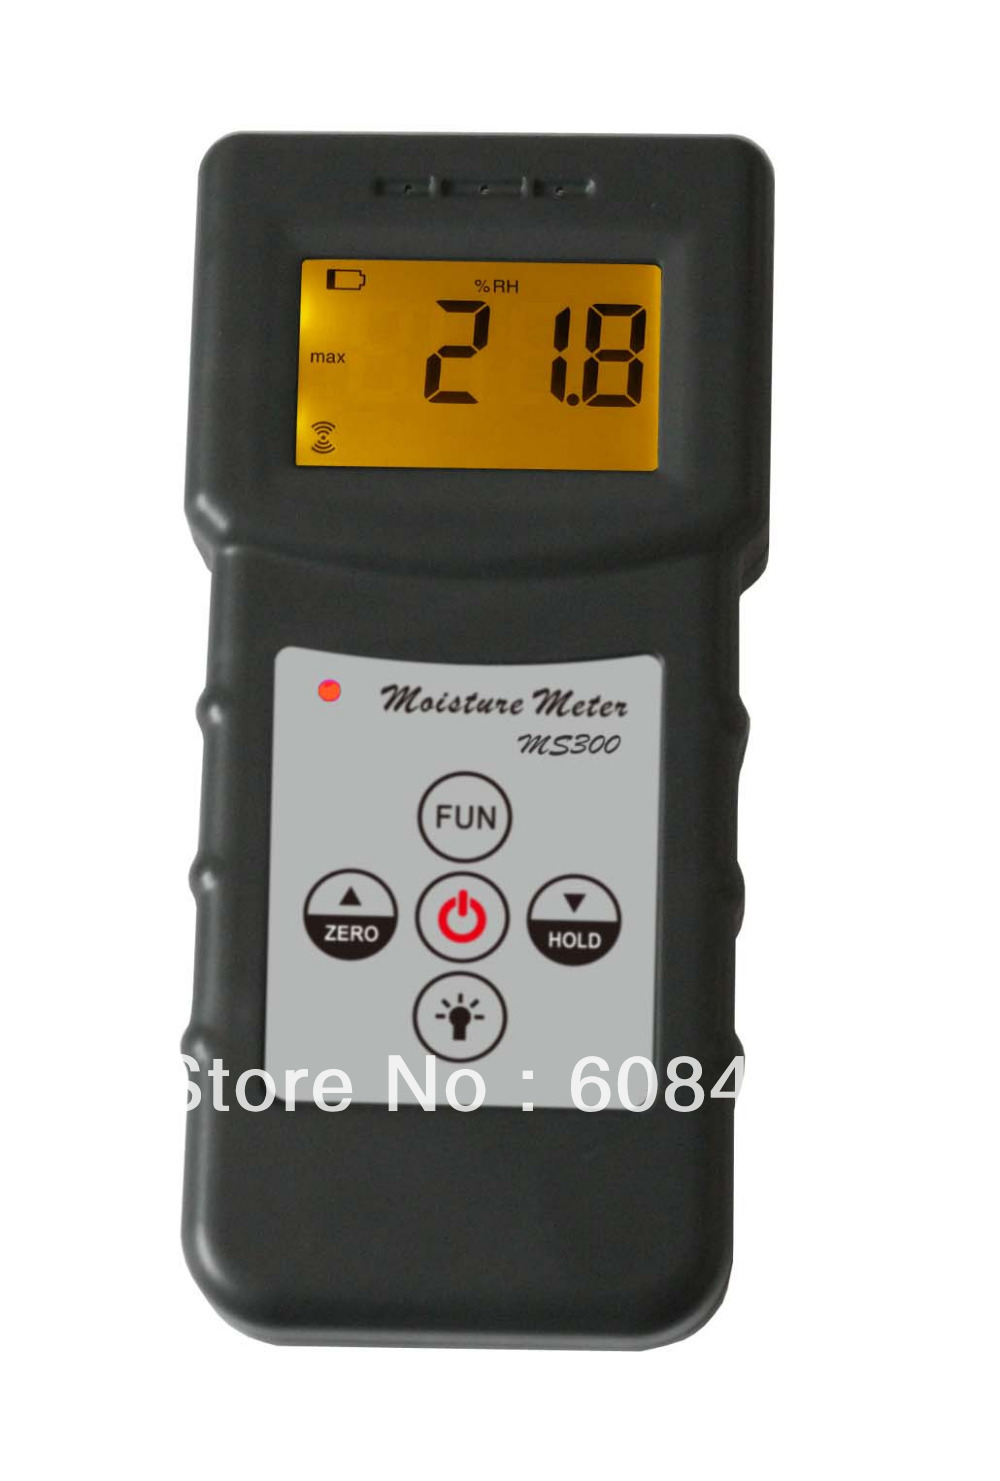 3 Pcs/Lot Inductive moisture meter measuring moisture content of wood,paper,Bamboo, concrete,metope,and other material fiber materials wooden articles tobacco cotton paper building soil and other fibre materials digital wood moisture meter mc7806